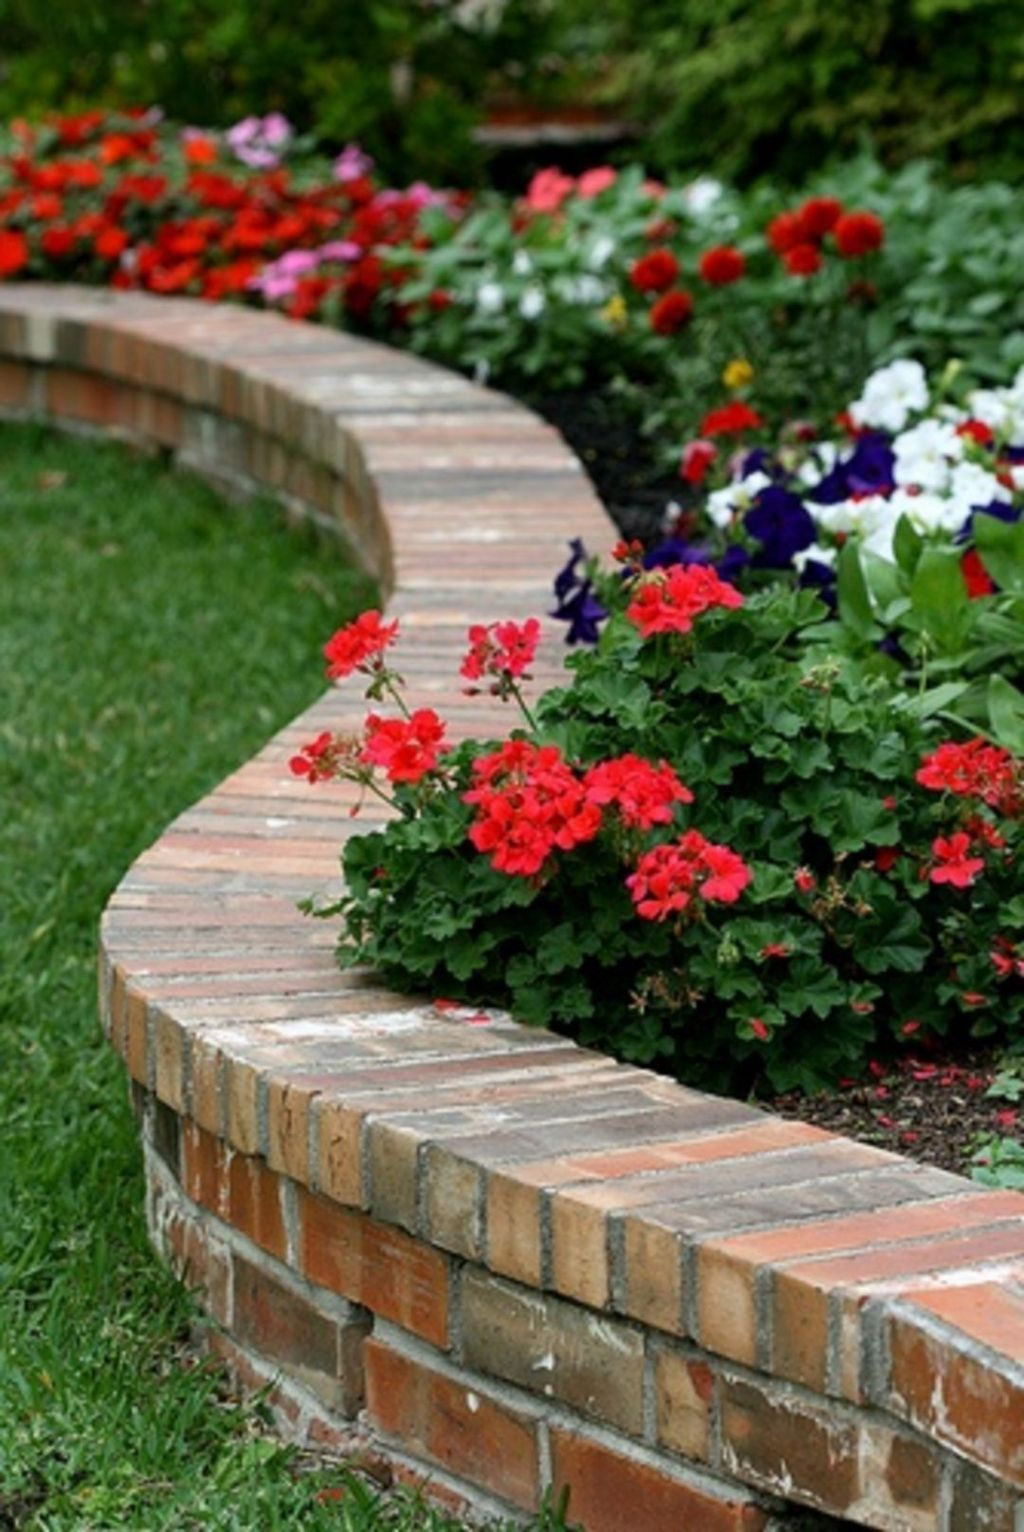 35 beautiful flower beds design ideas in front of house in